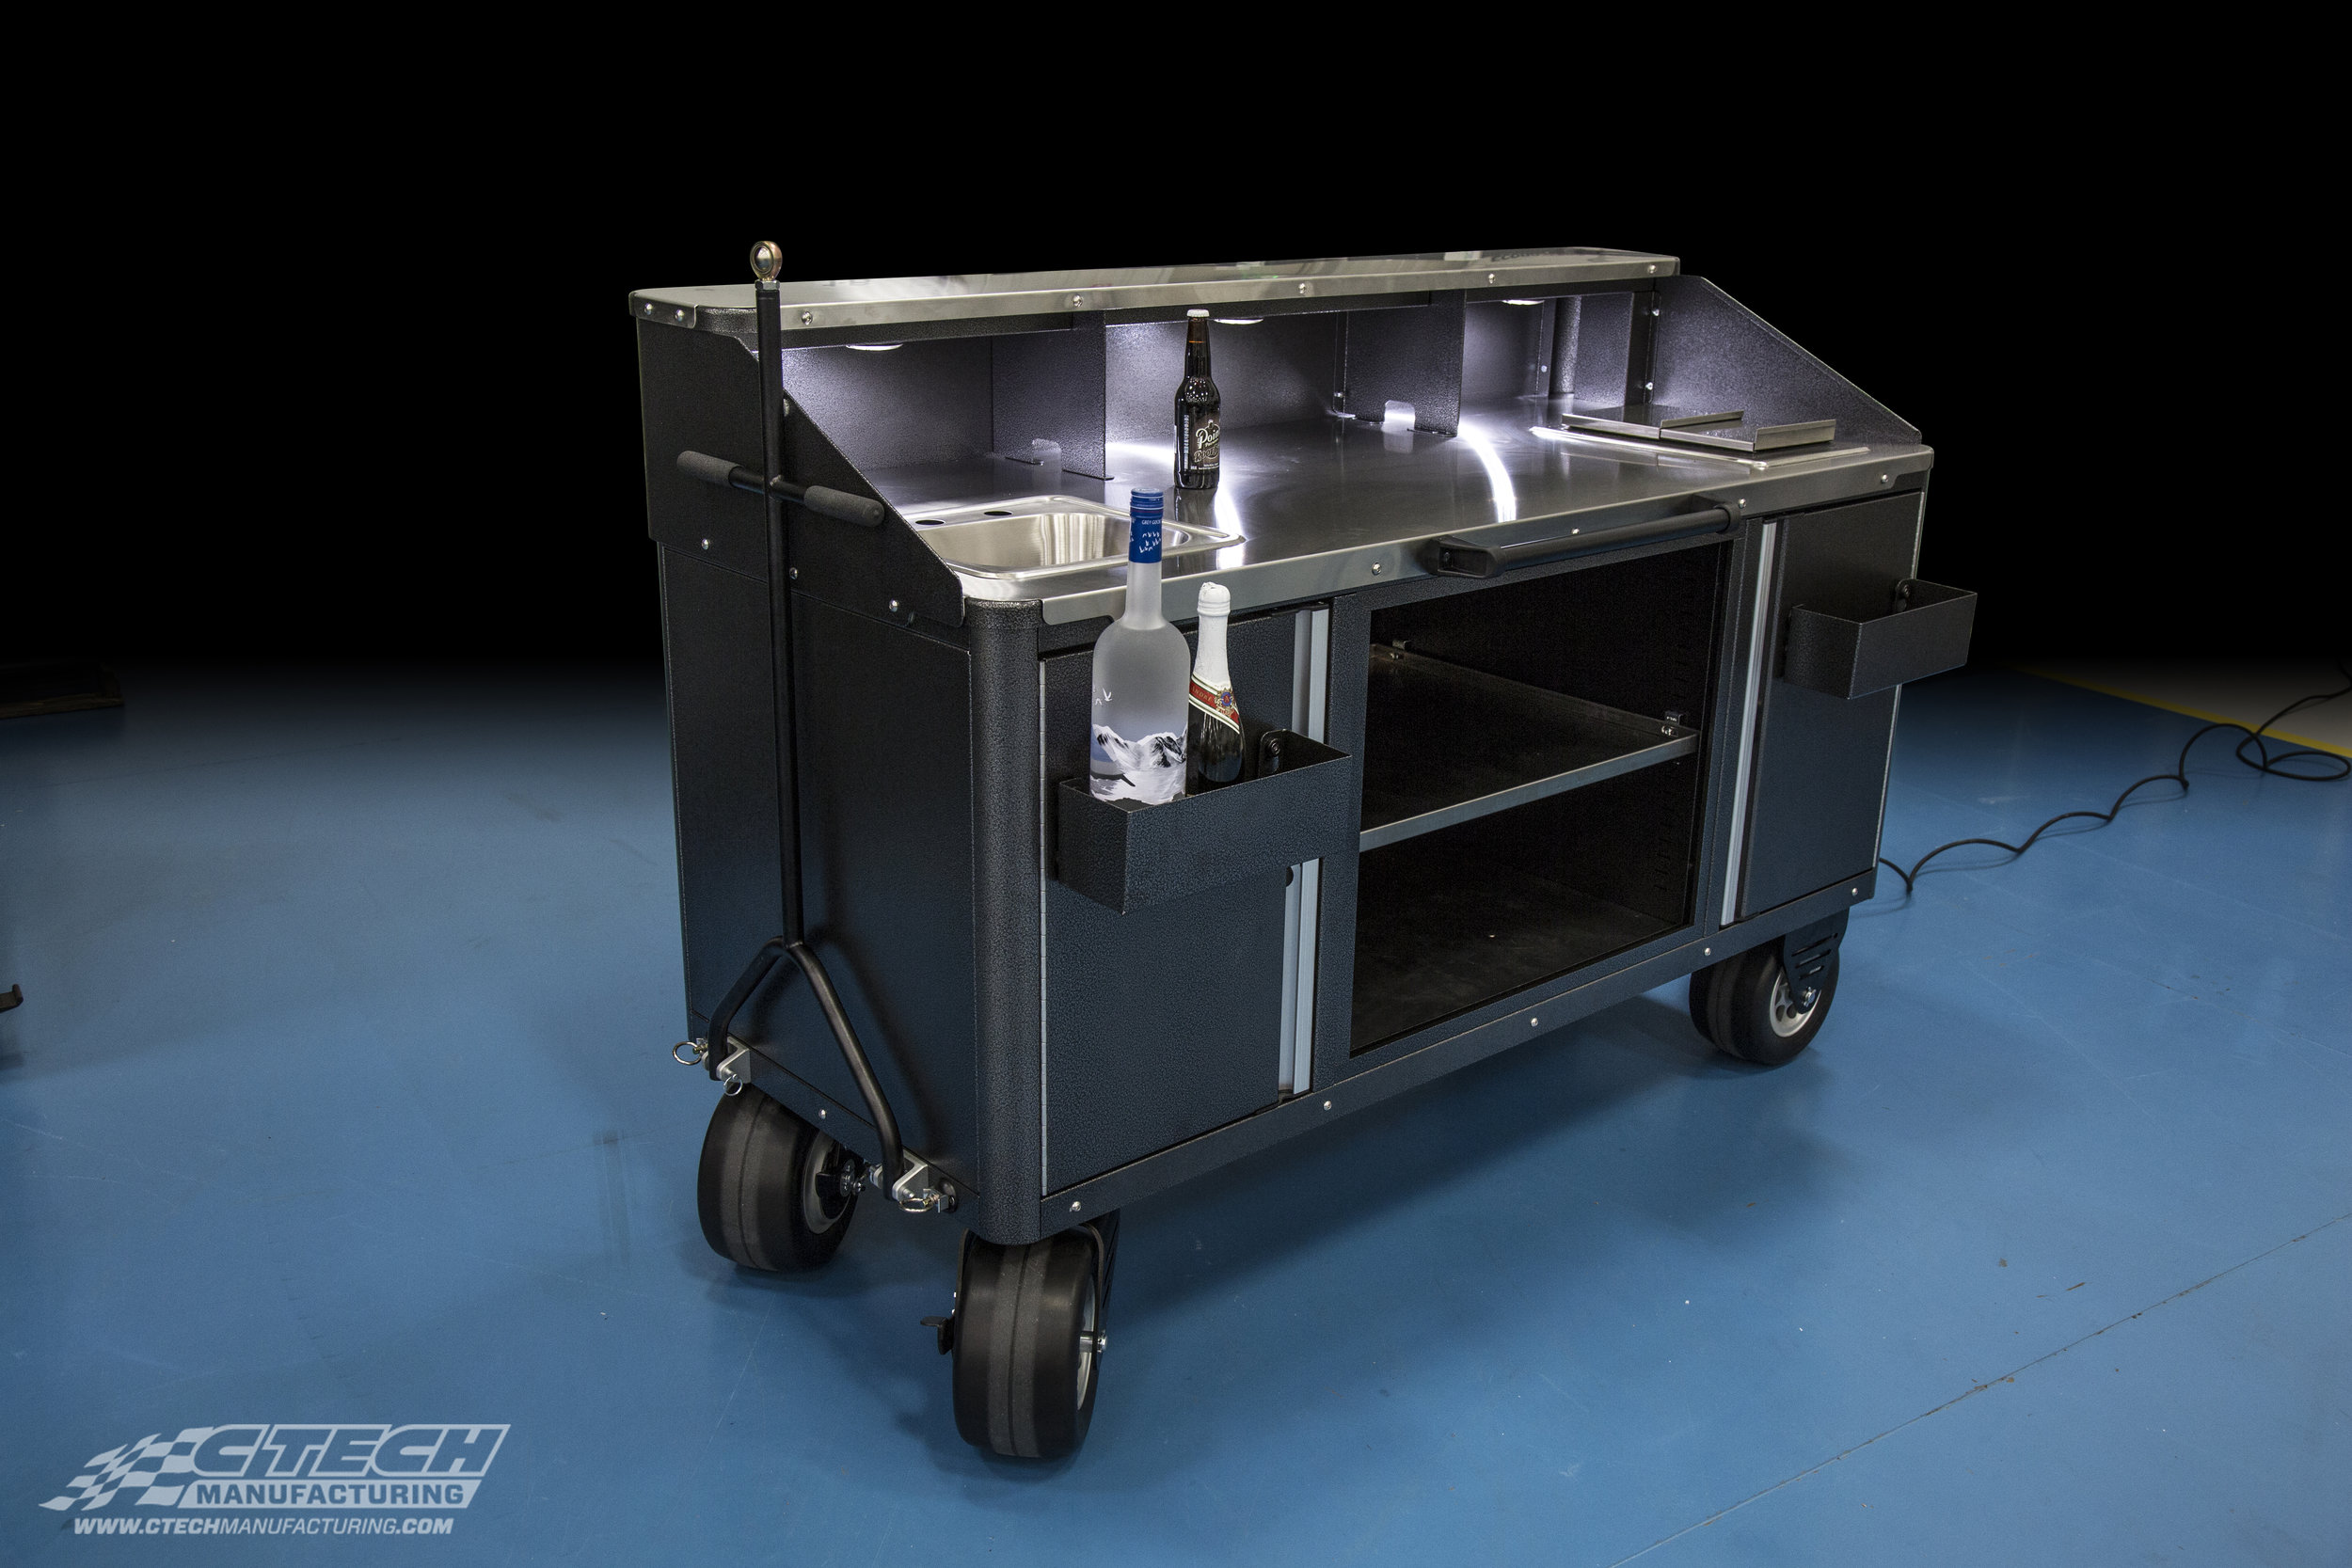 Need a drink? CTECH brings the bar to you with this Bar Cart equipped with all-terrain BadAss Caster wheels. Interior LED lighting is included, complete with all of the other amenities that a mobile bar can offer.